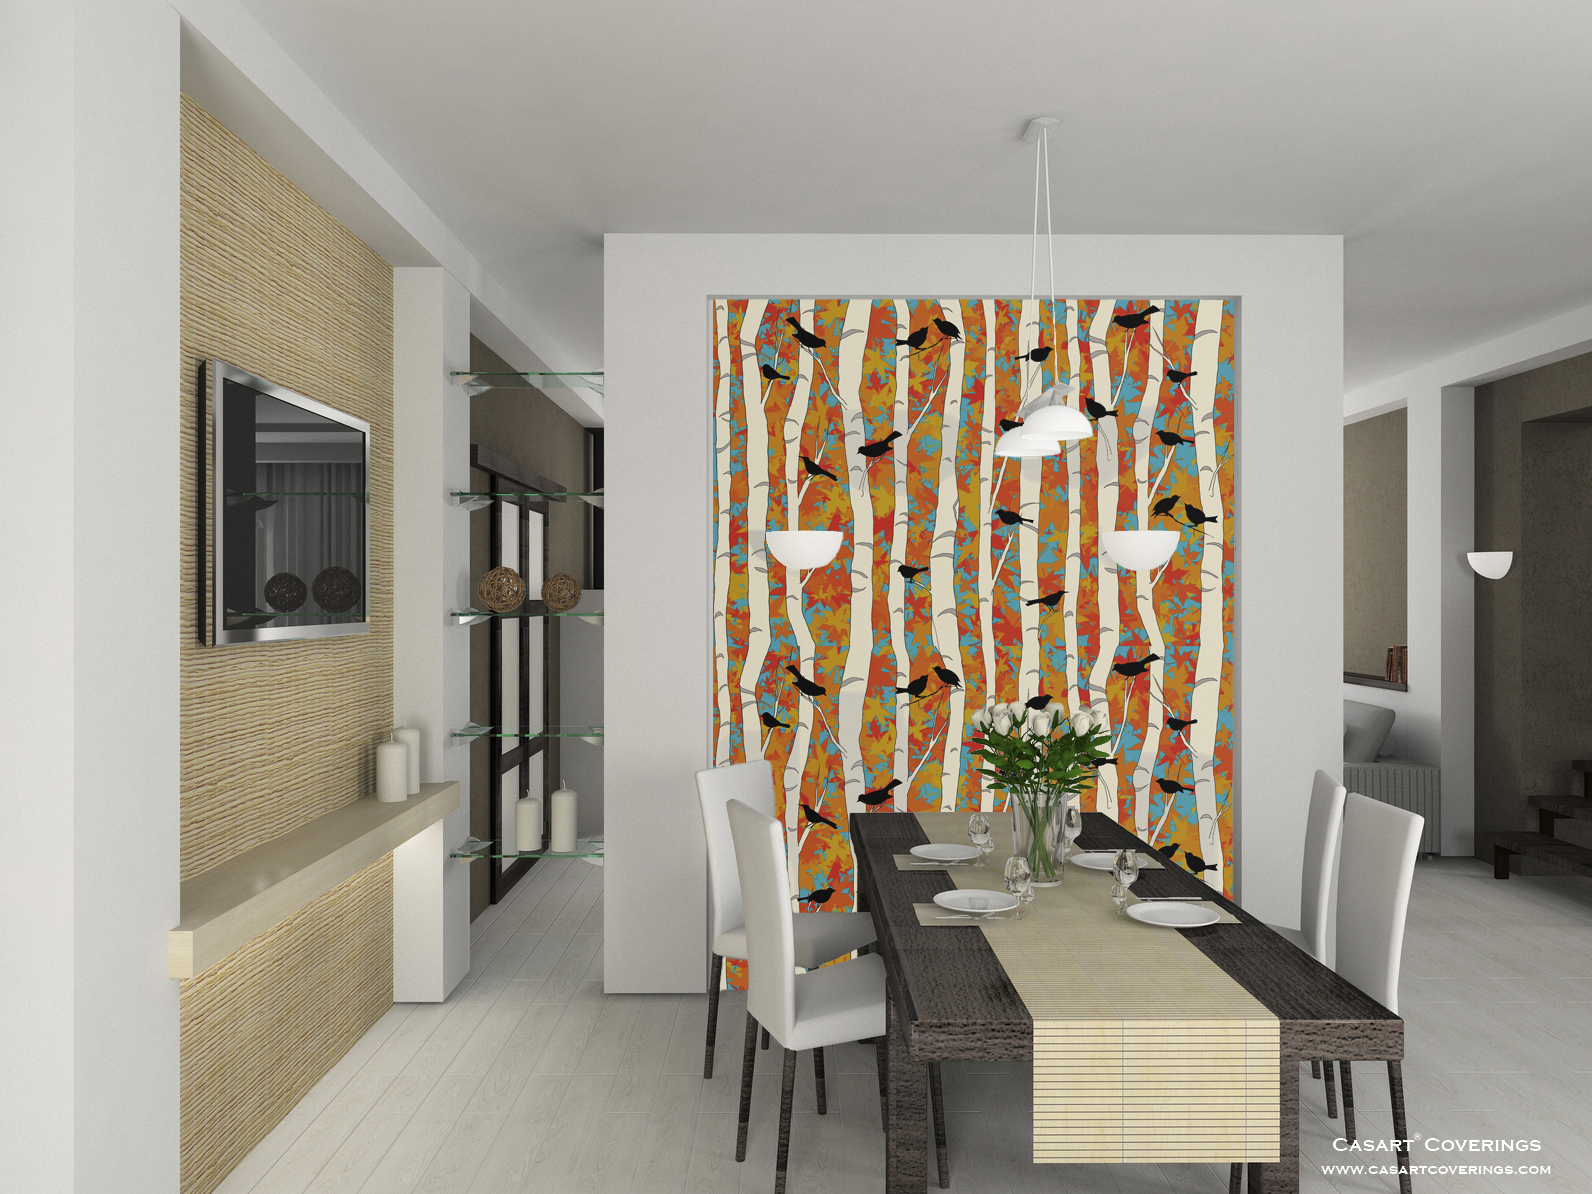 Interior design wallcoverings by casart corinne gail for 3d wallpaper for dining room